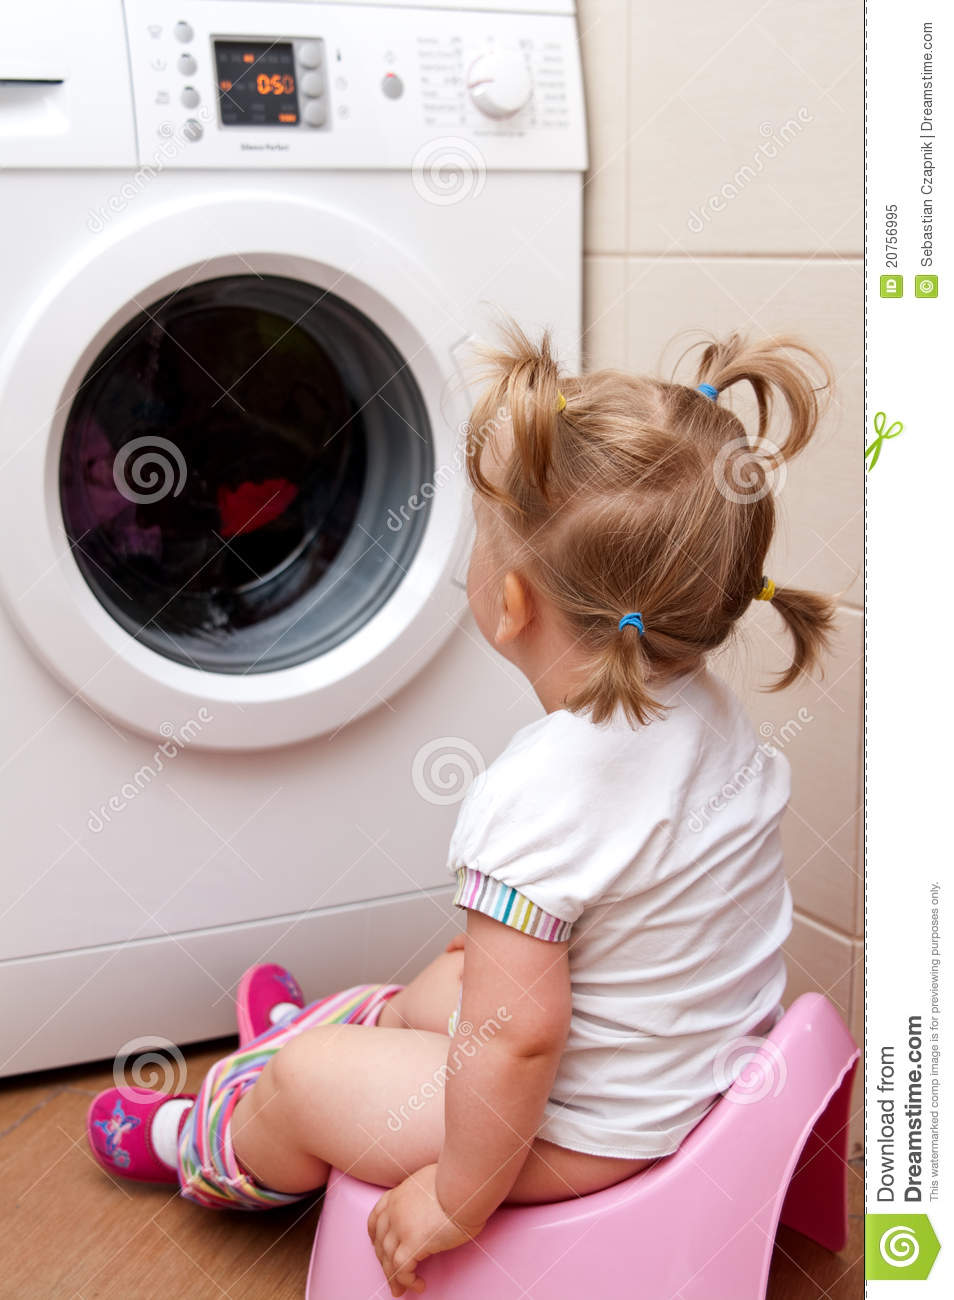 Toddler near clothes dryer